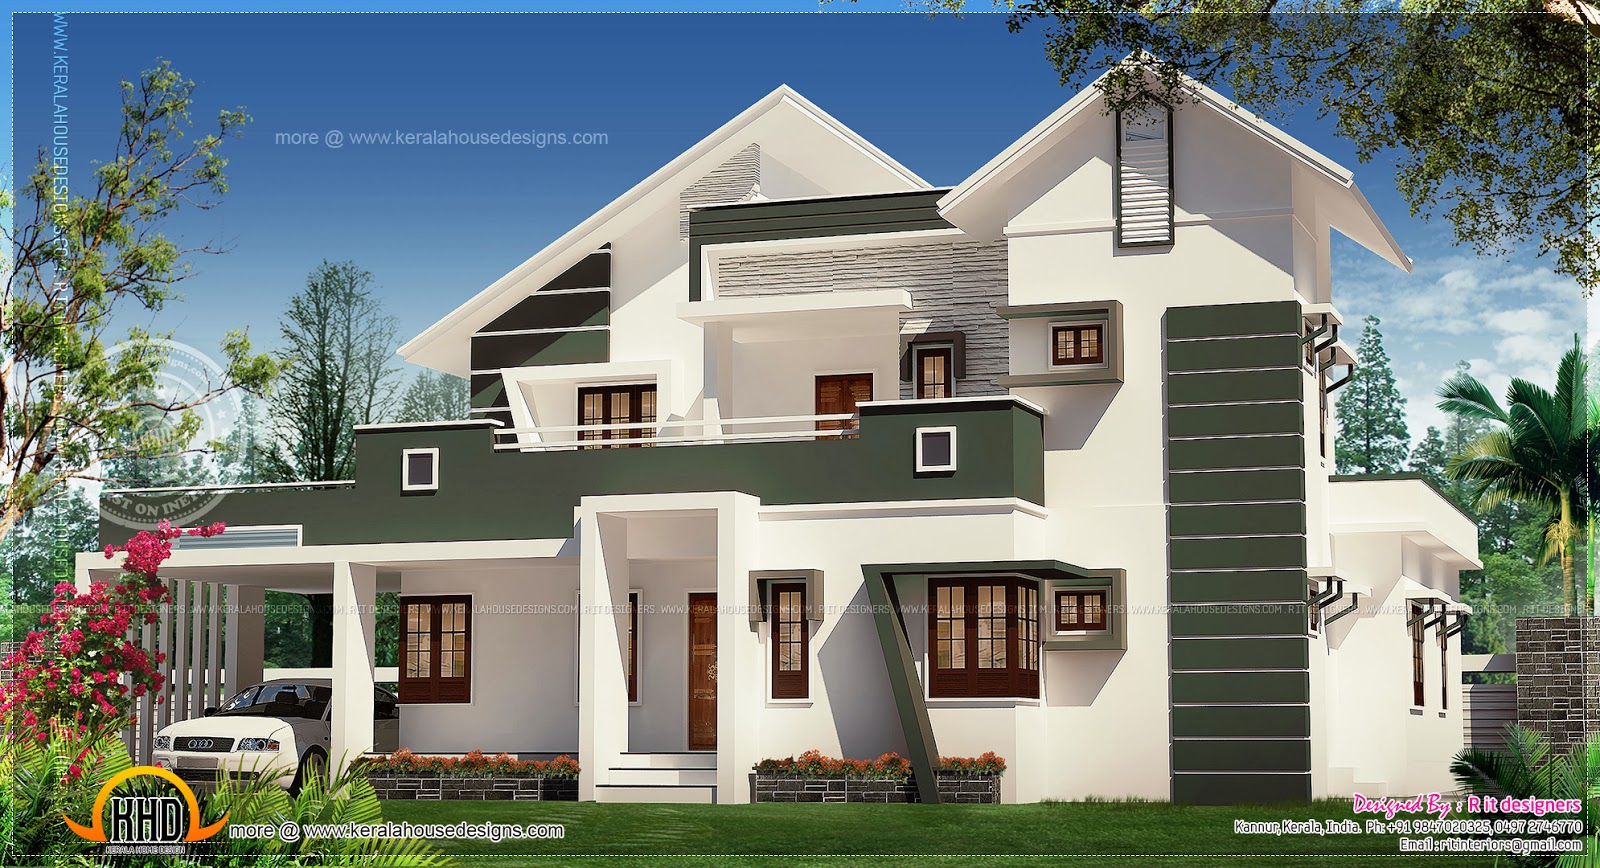 Luxury Modern Villa Elevation Home Kerala Plans